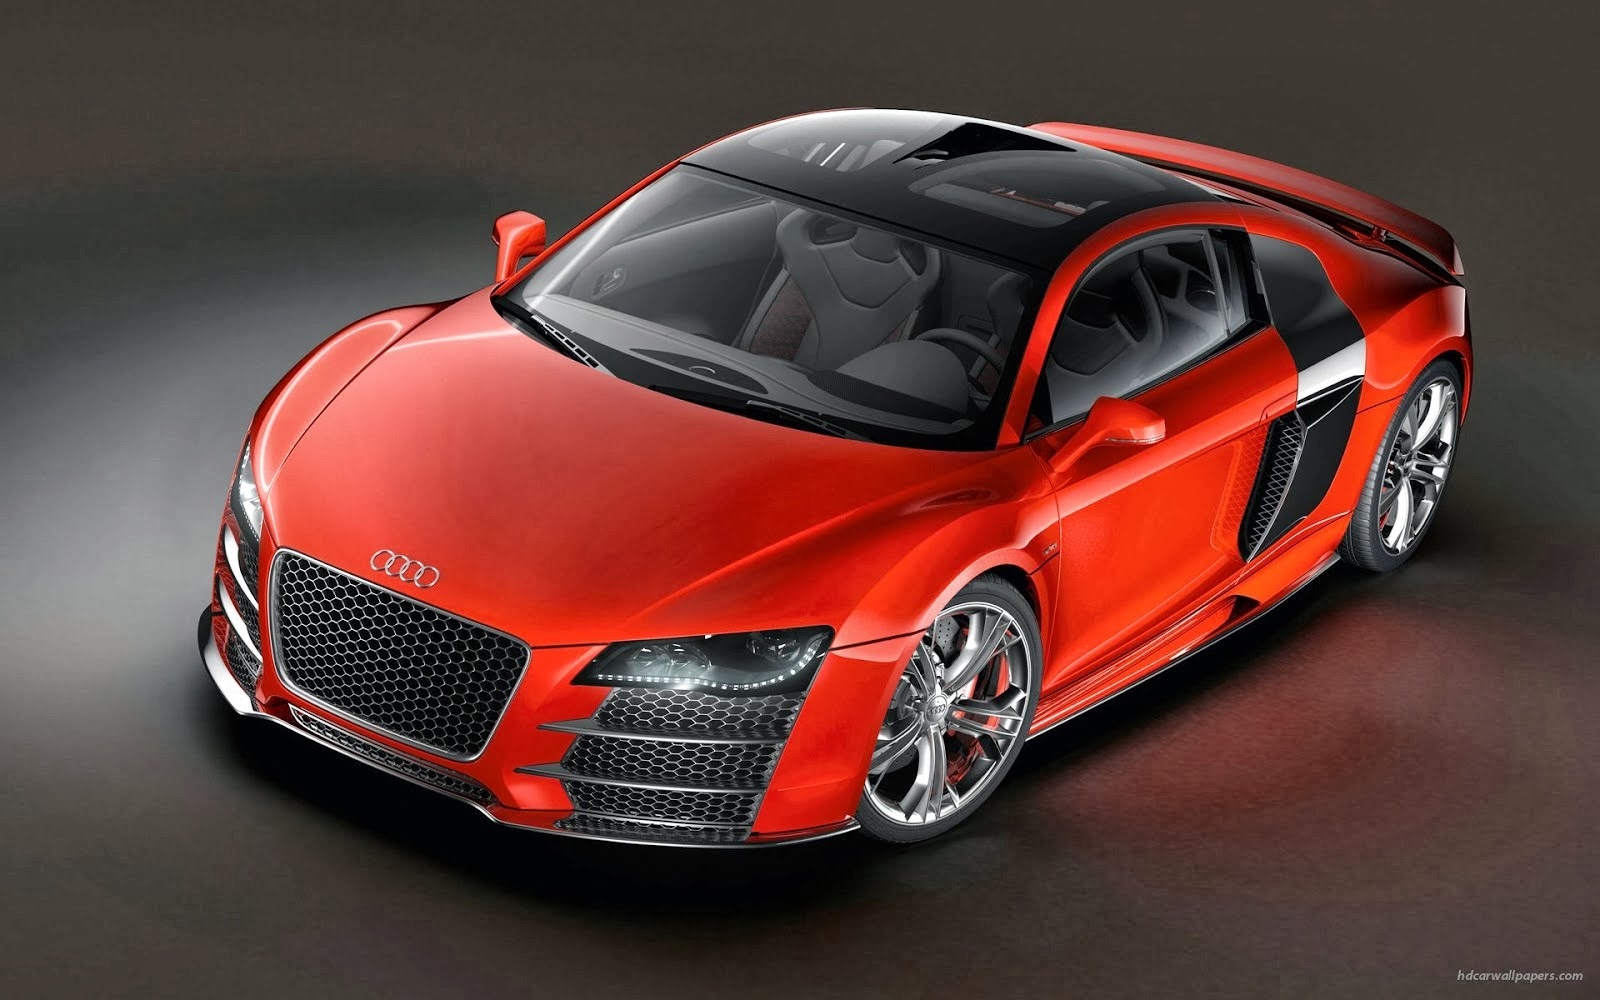 AUDI R8 HD WALLPAPER | FREE HD WALLPAPERS